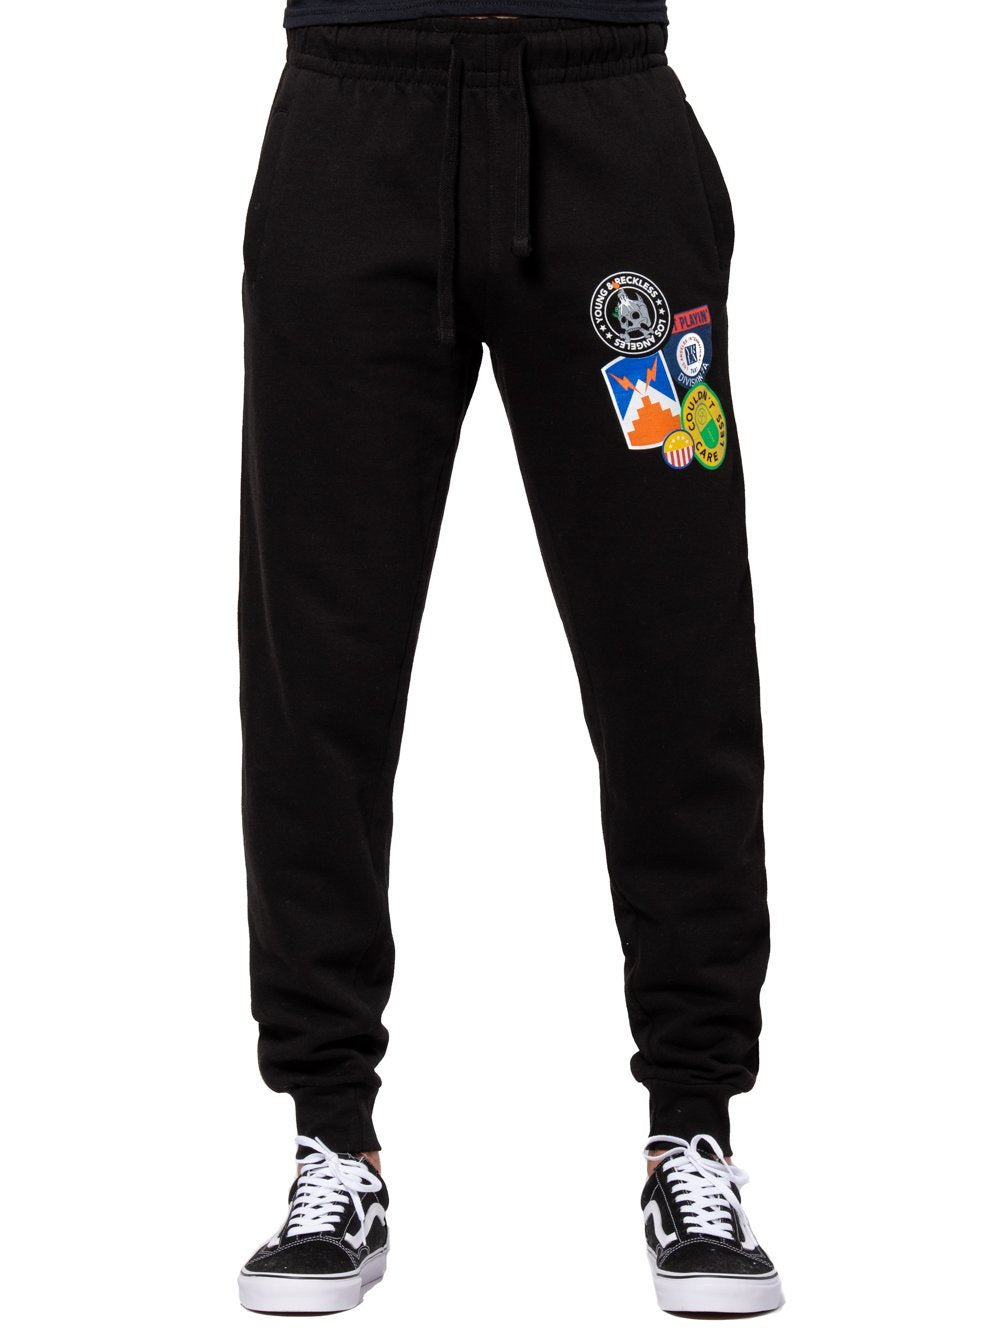 Young and Reckless Mens - Bottoms - Sweatpants Emery Sweatpants - Black